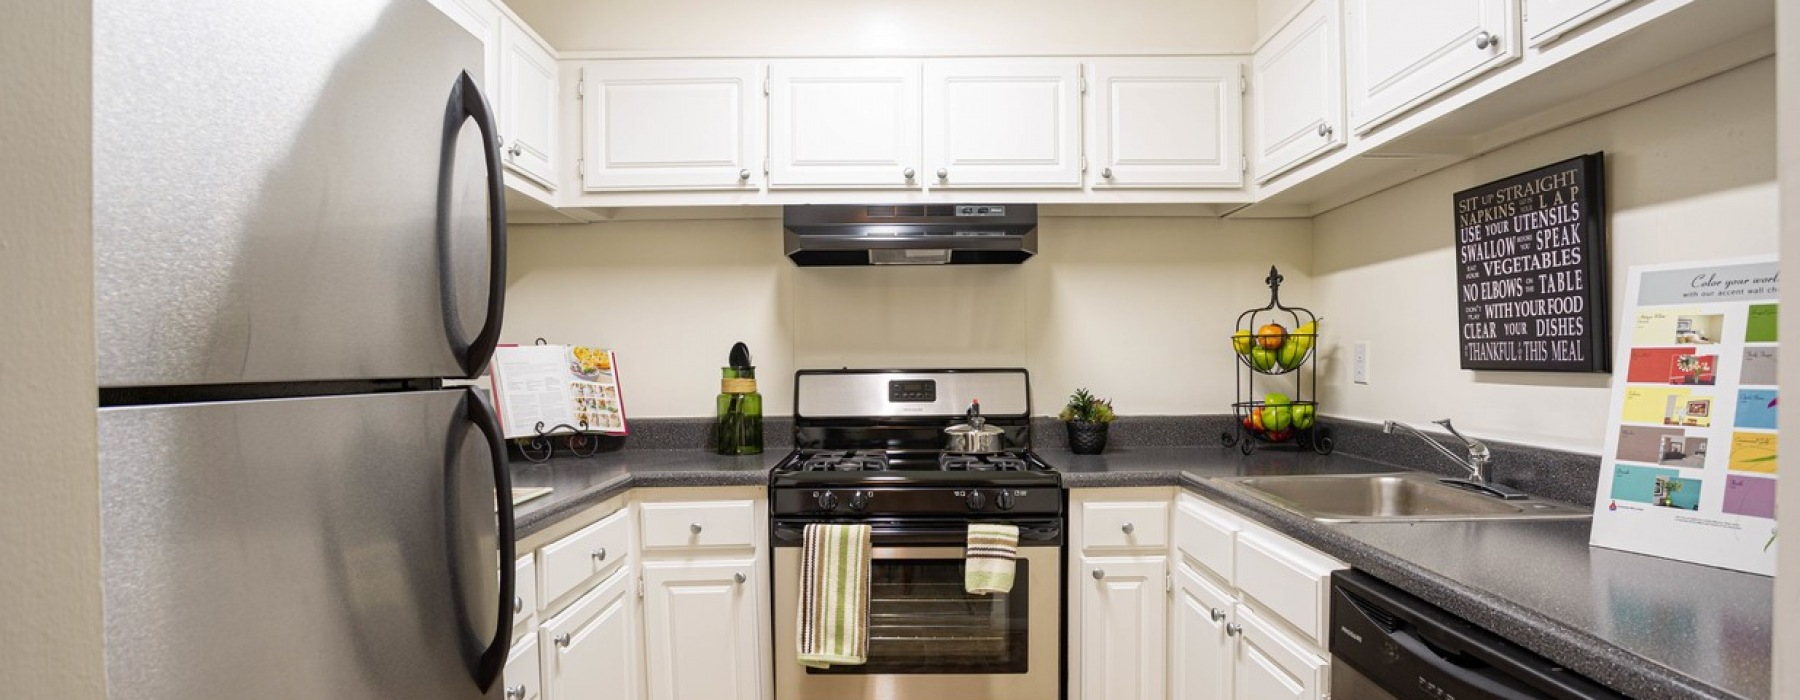 Renovated kitchens and stainless appliances